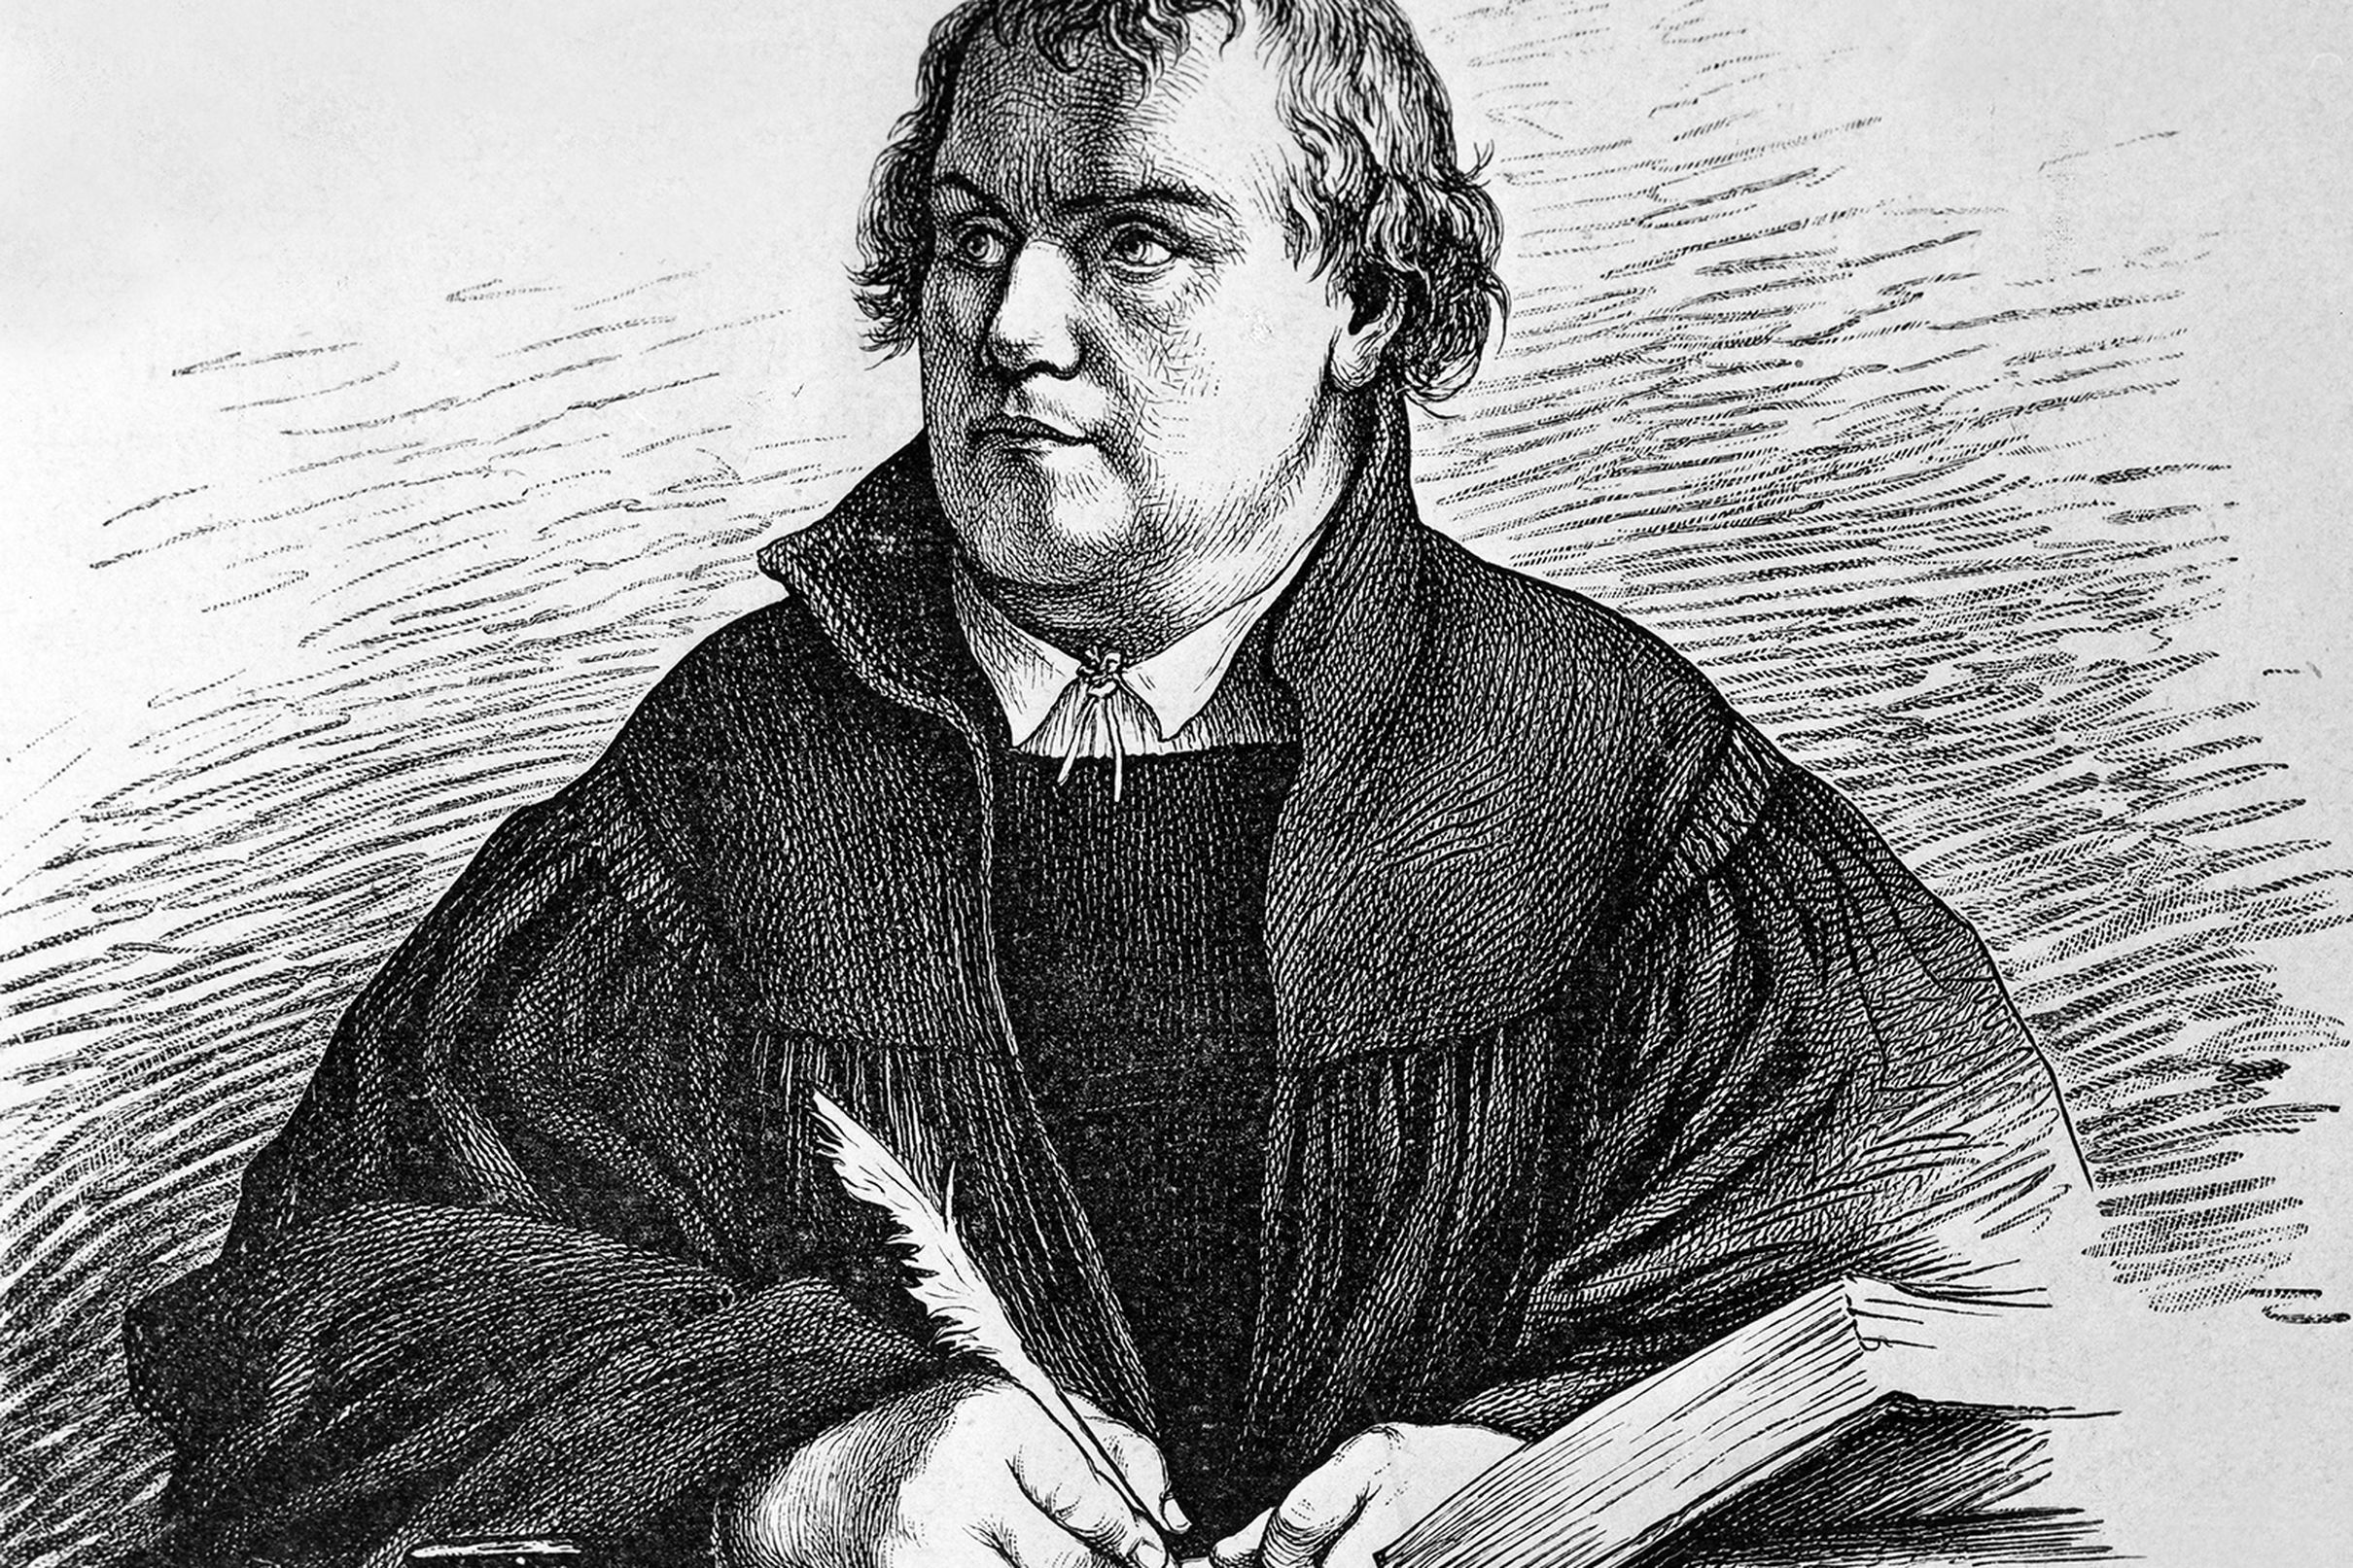 500 Years Ago Martin Luther Changed Christianity